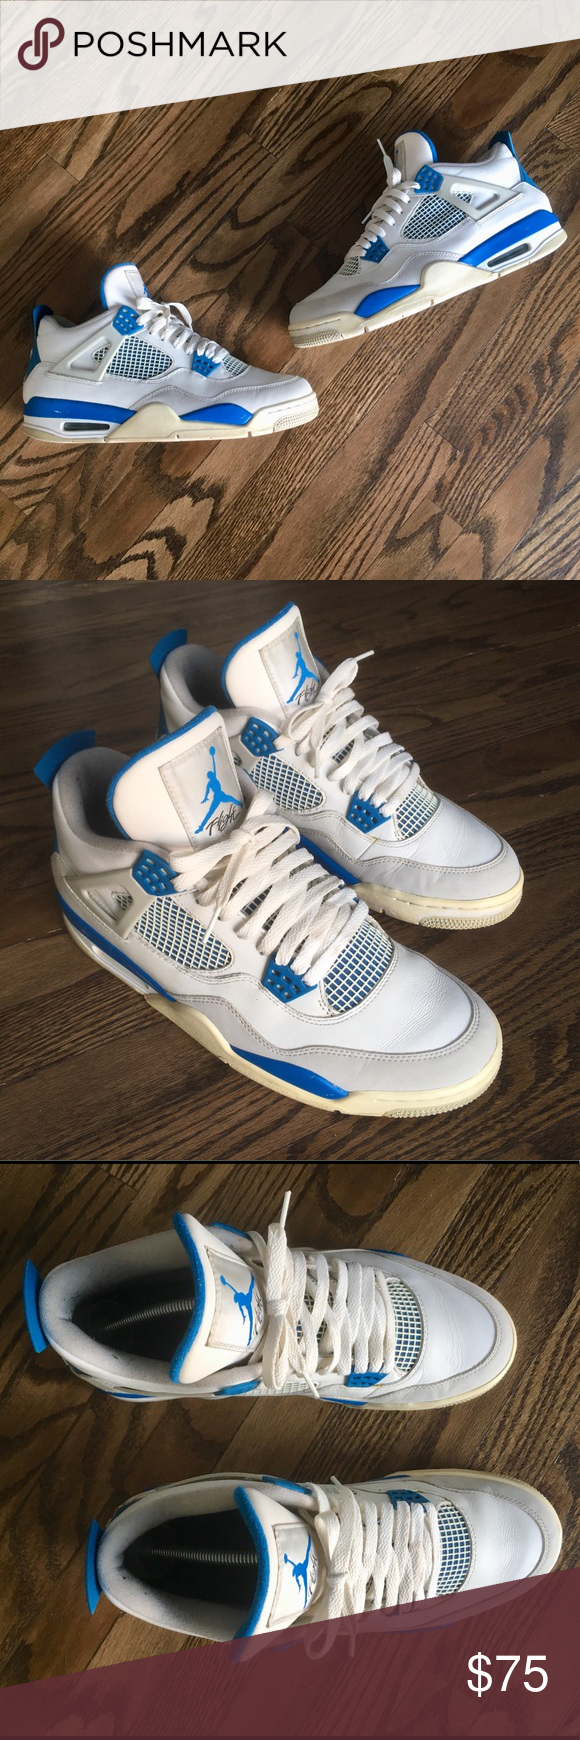 promo code 11254 ed63b Nike Air Jordan 4 Retro Military Blue 2012 Release Up for ...